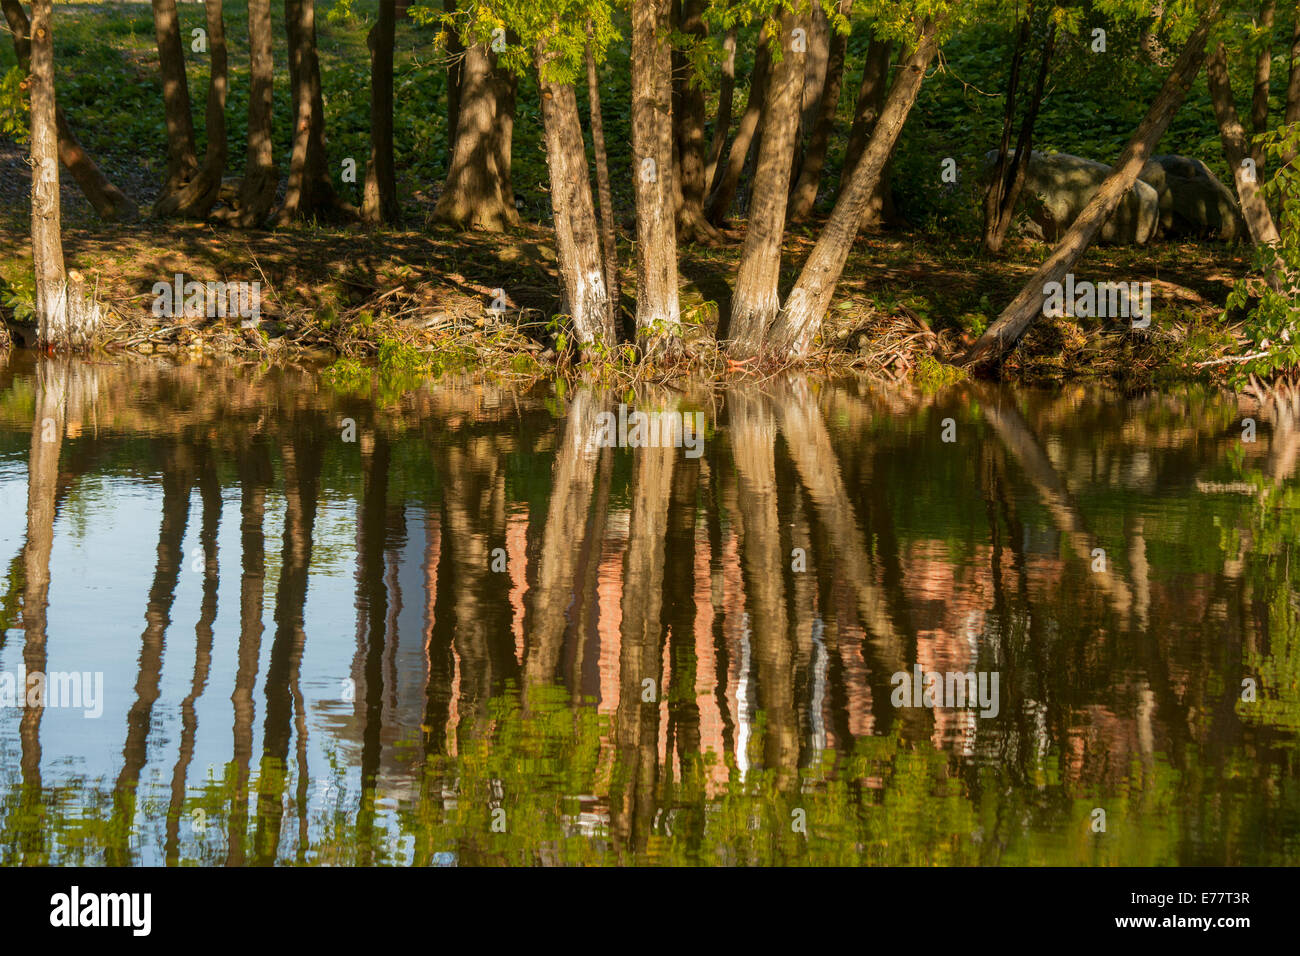 trees-reflecting-in-the-scugog-river-in-lindsay-kawartha-lakes-ontario-E77T3R.jpg